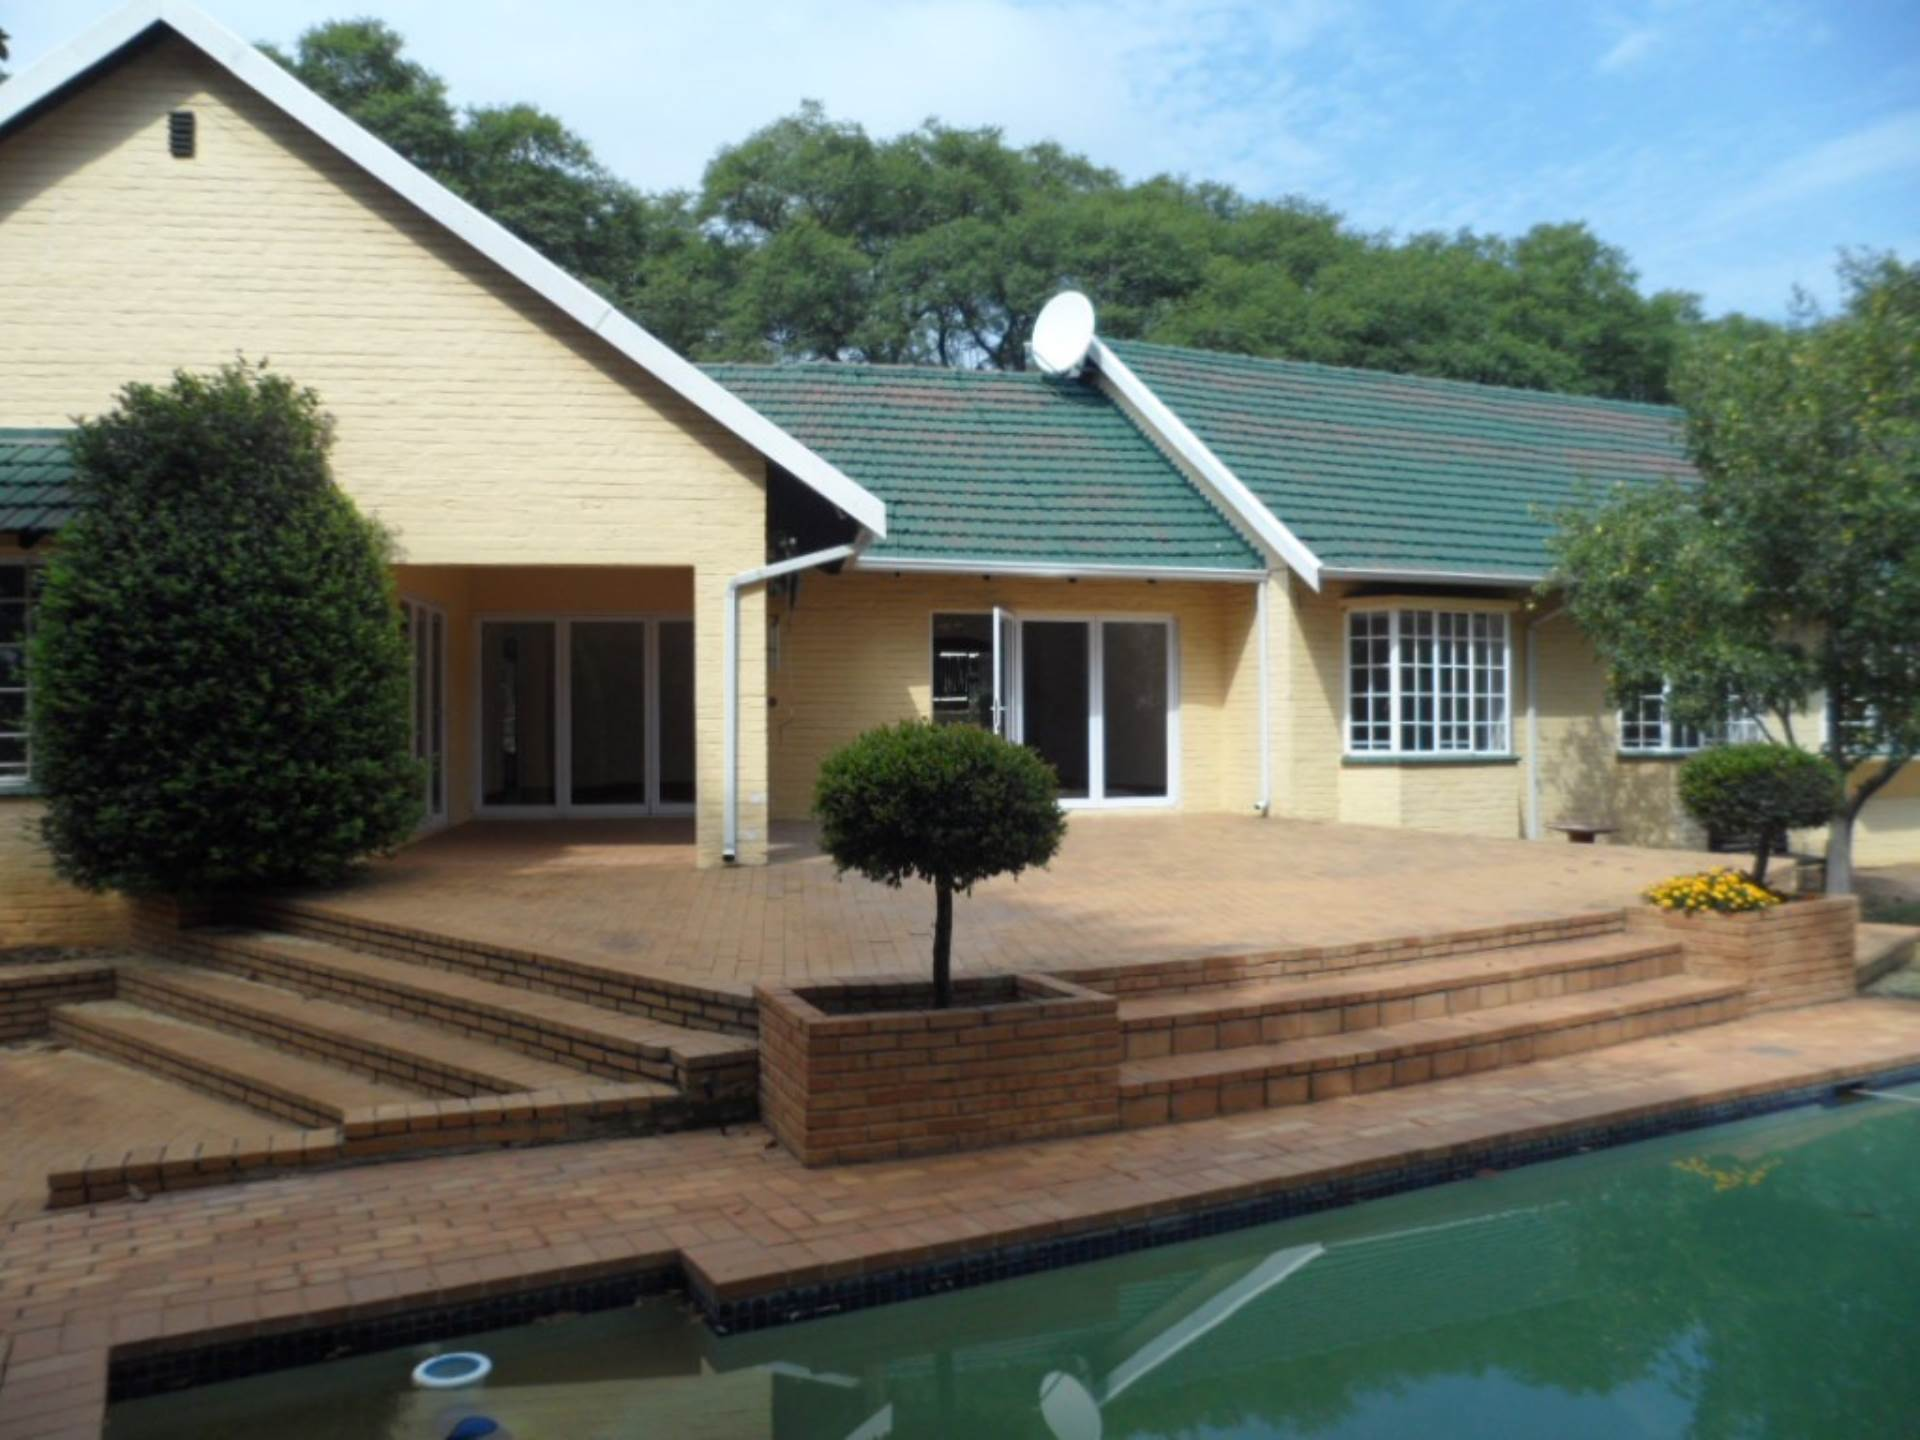 5 BedroomHouse For Sale In Bryanston